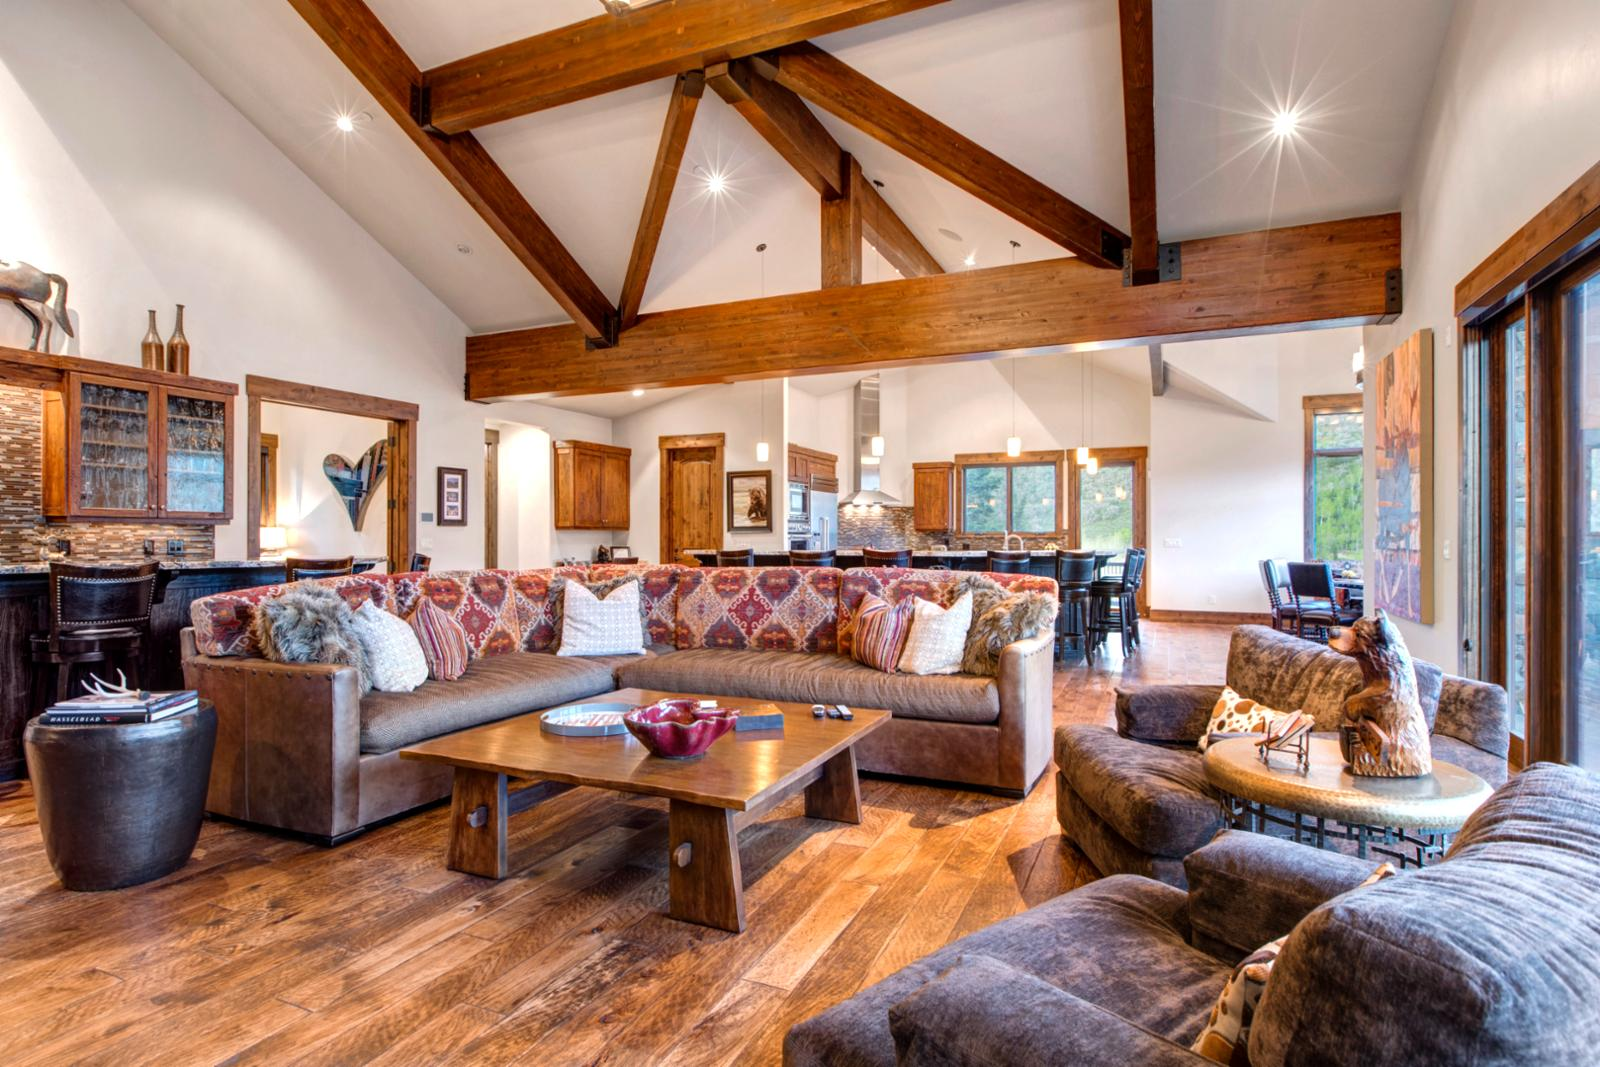 An open floor plan that has space for everyone together